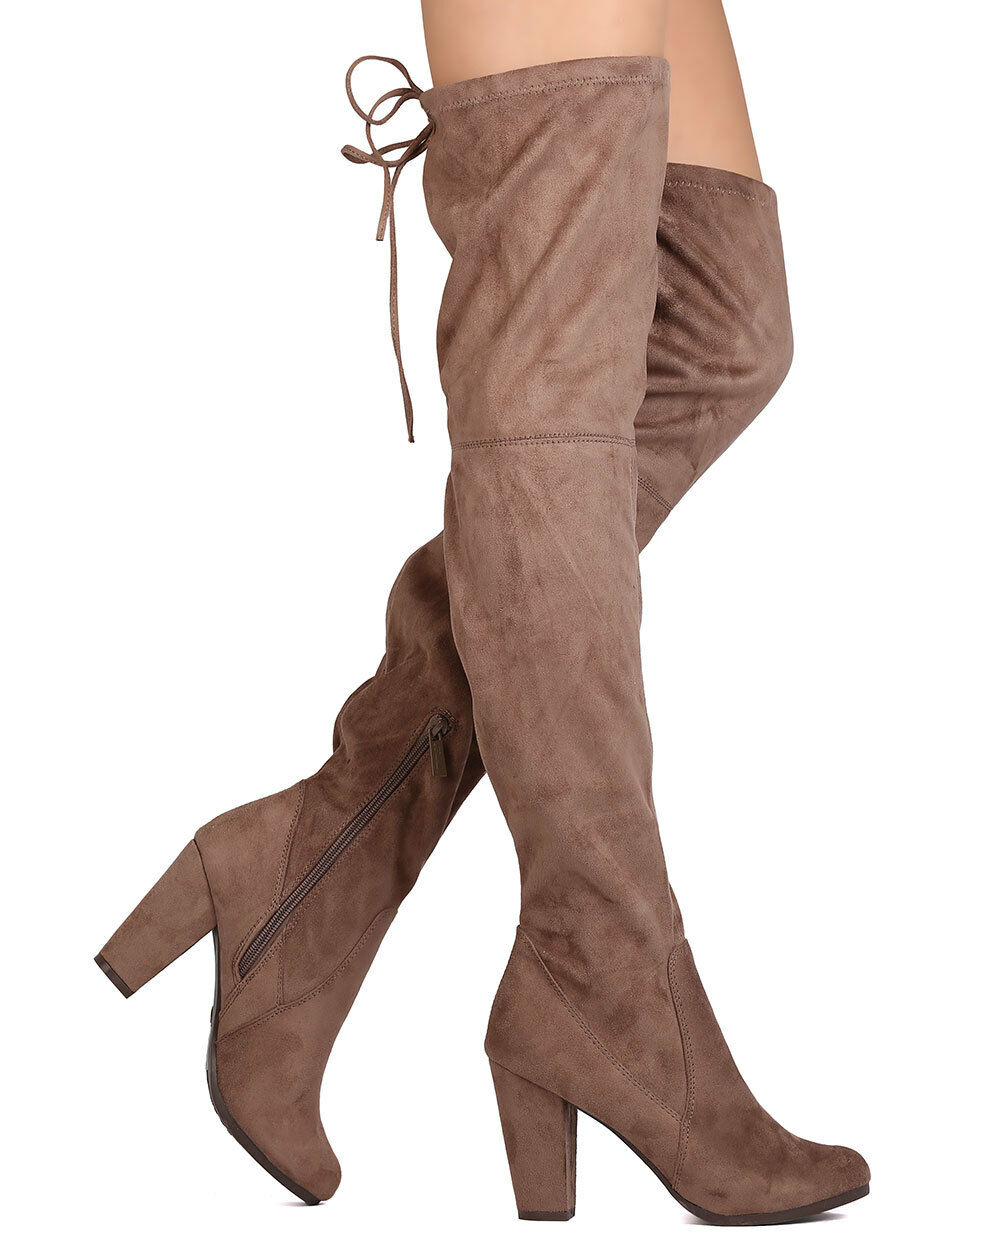 New Women Breckelles Gina-38 Faux Suede Thigh High Drawstring Block Heel Boot